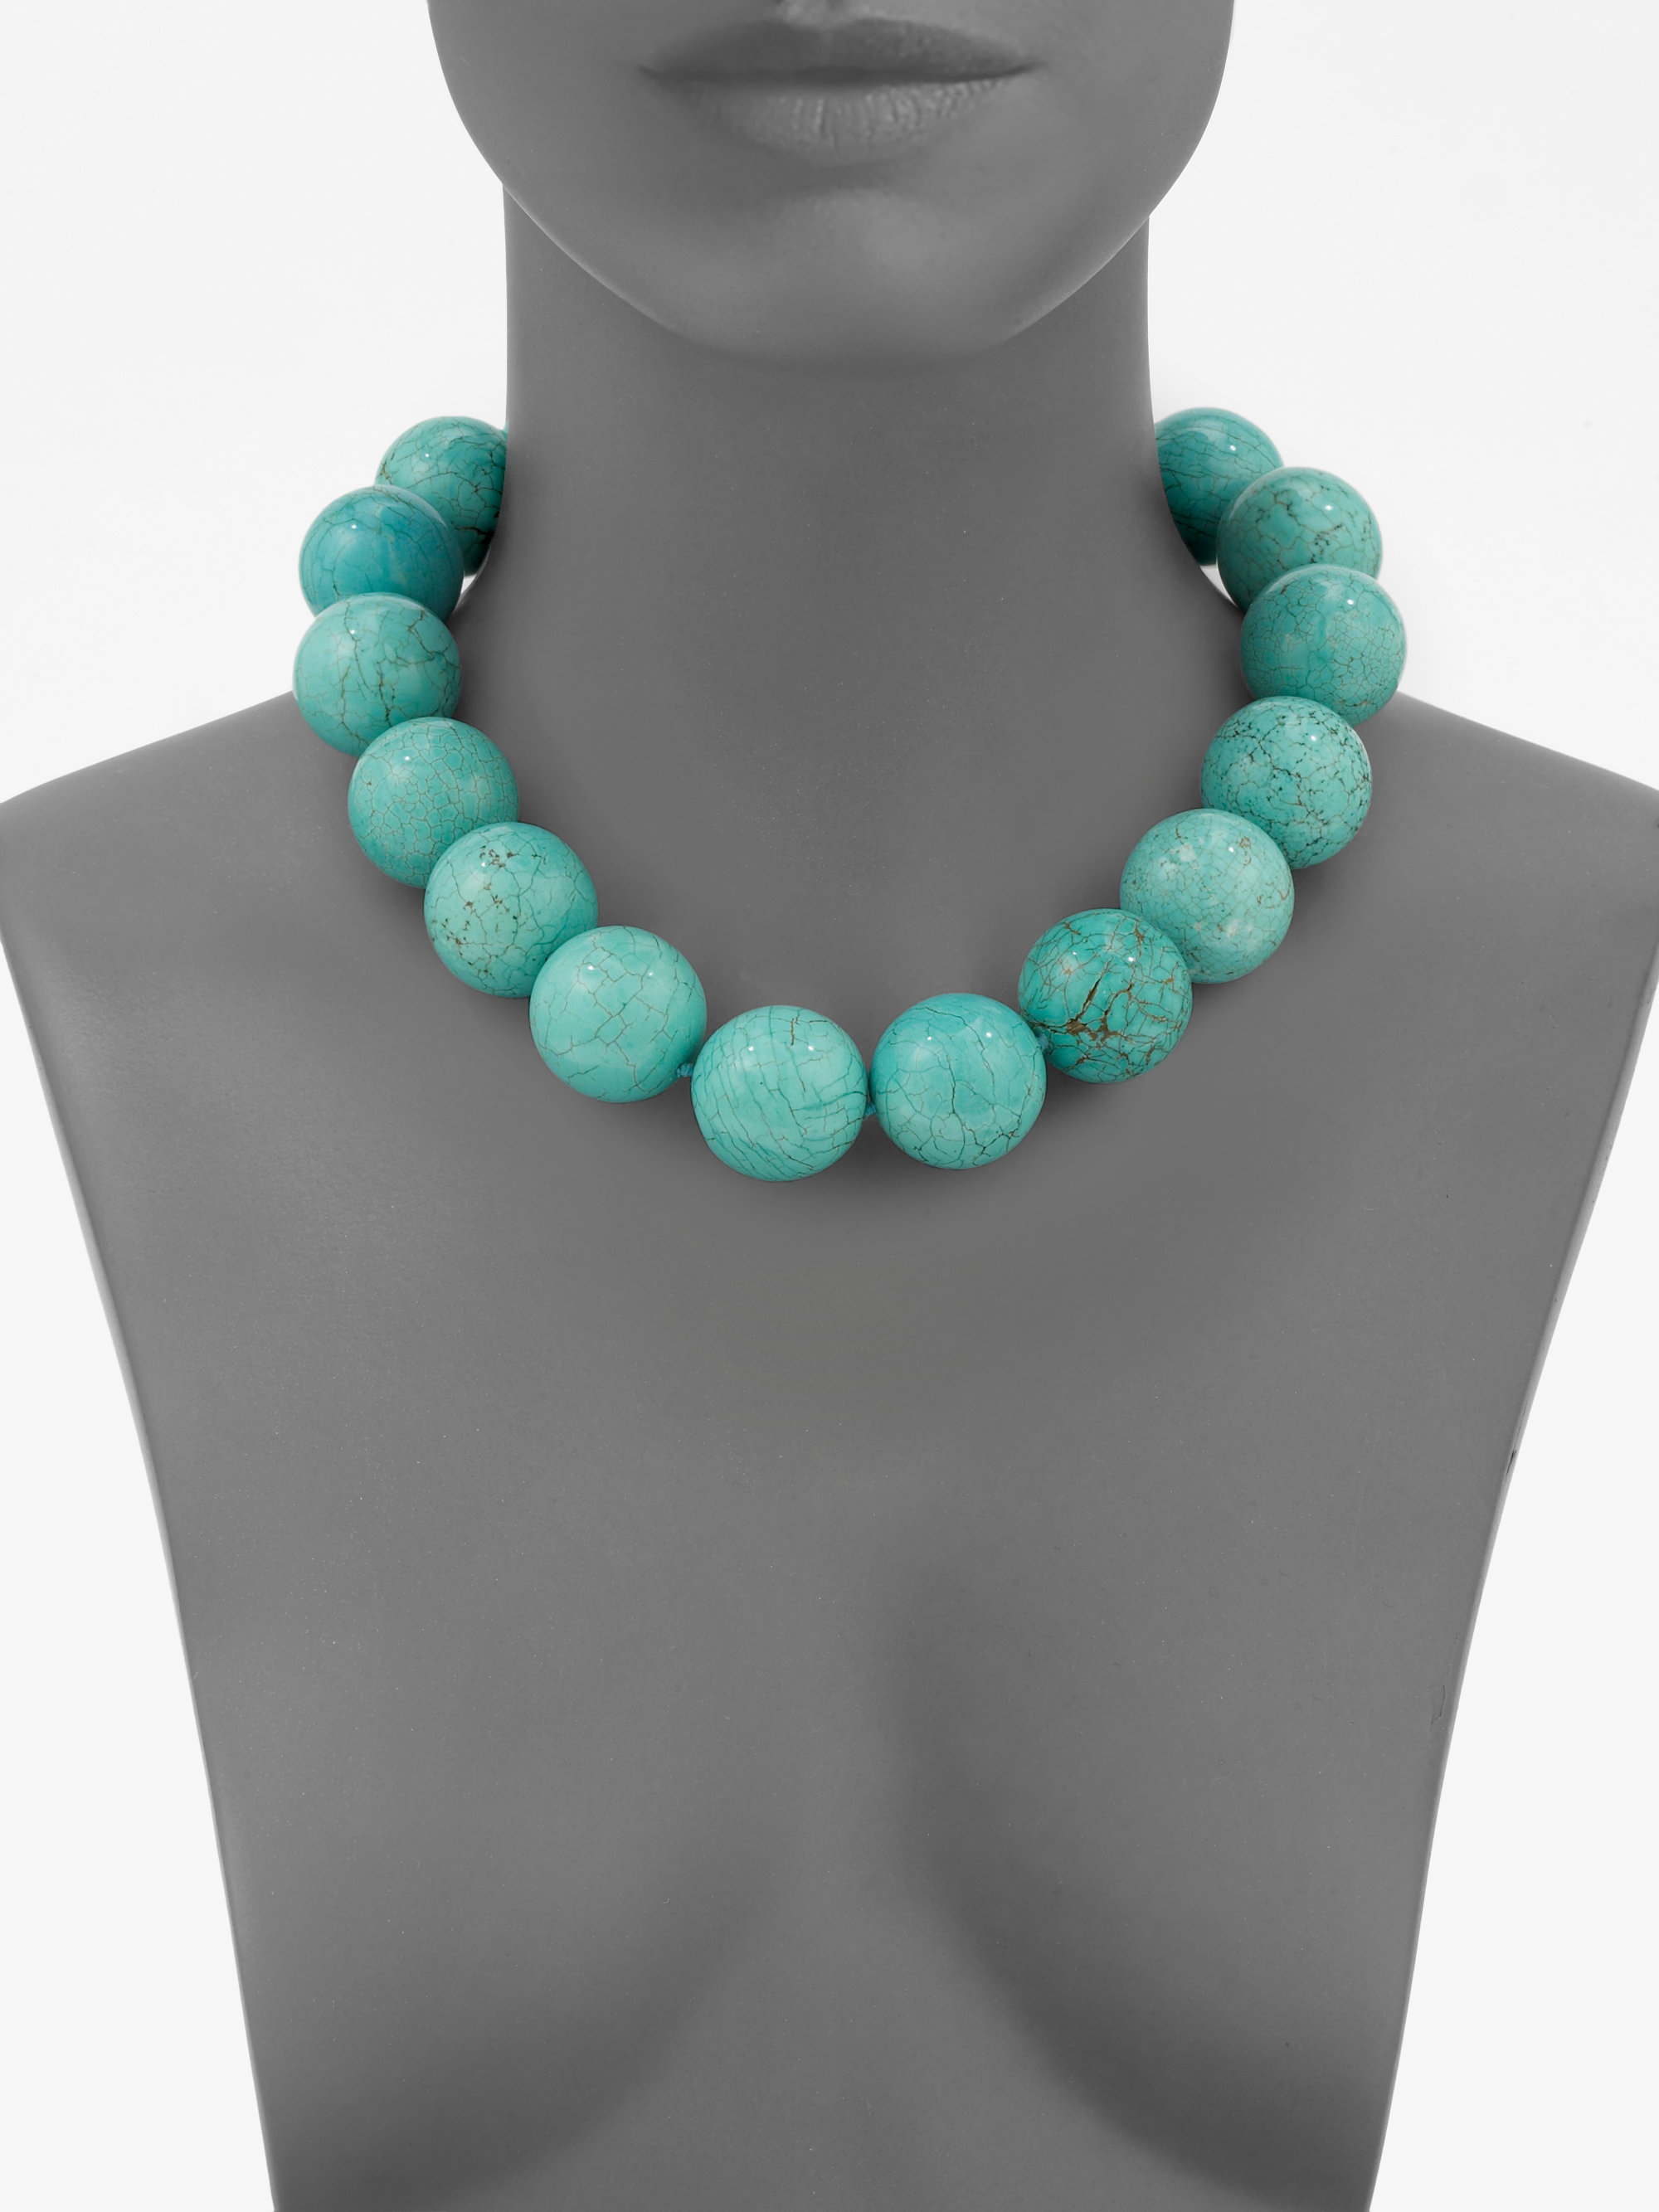 Kenneth Jay Lane Kenneth Jay Lane Woman Gold-tone Stone Necklace Turquoise Size pwWWjpHqN7